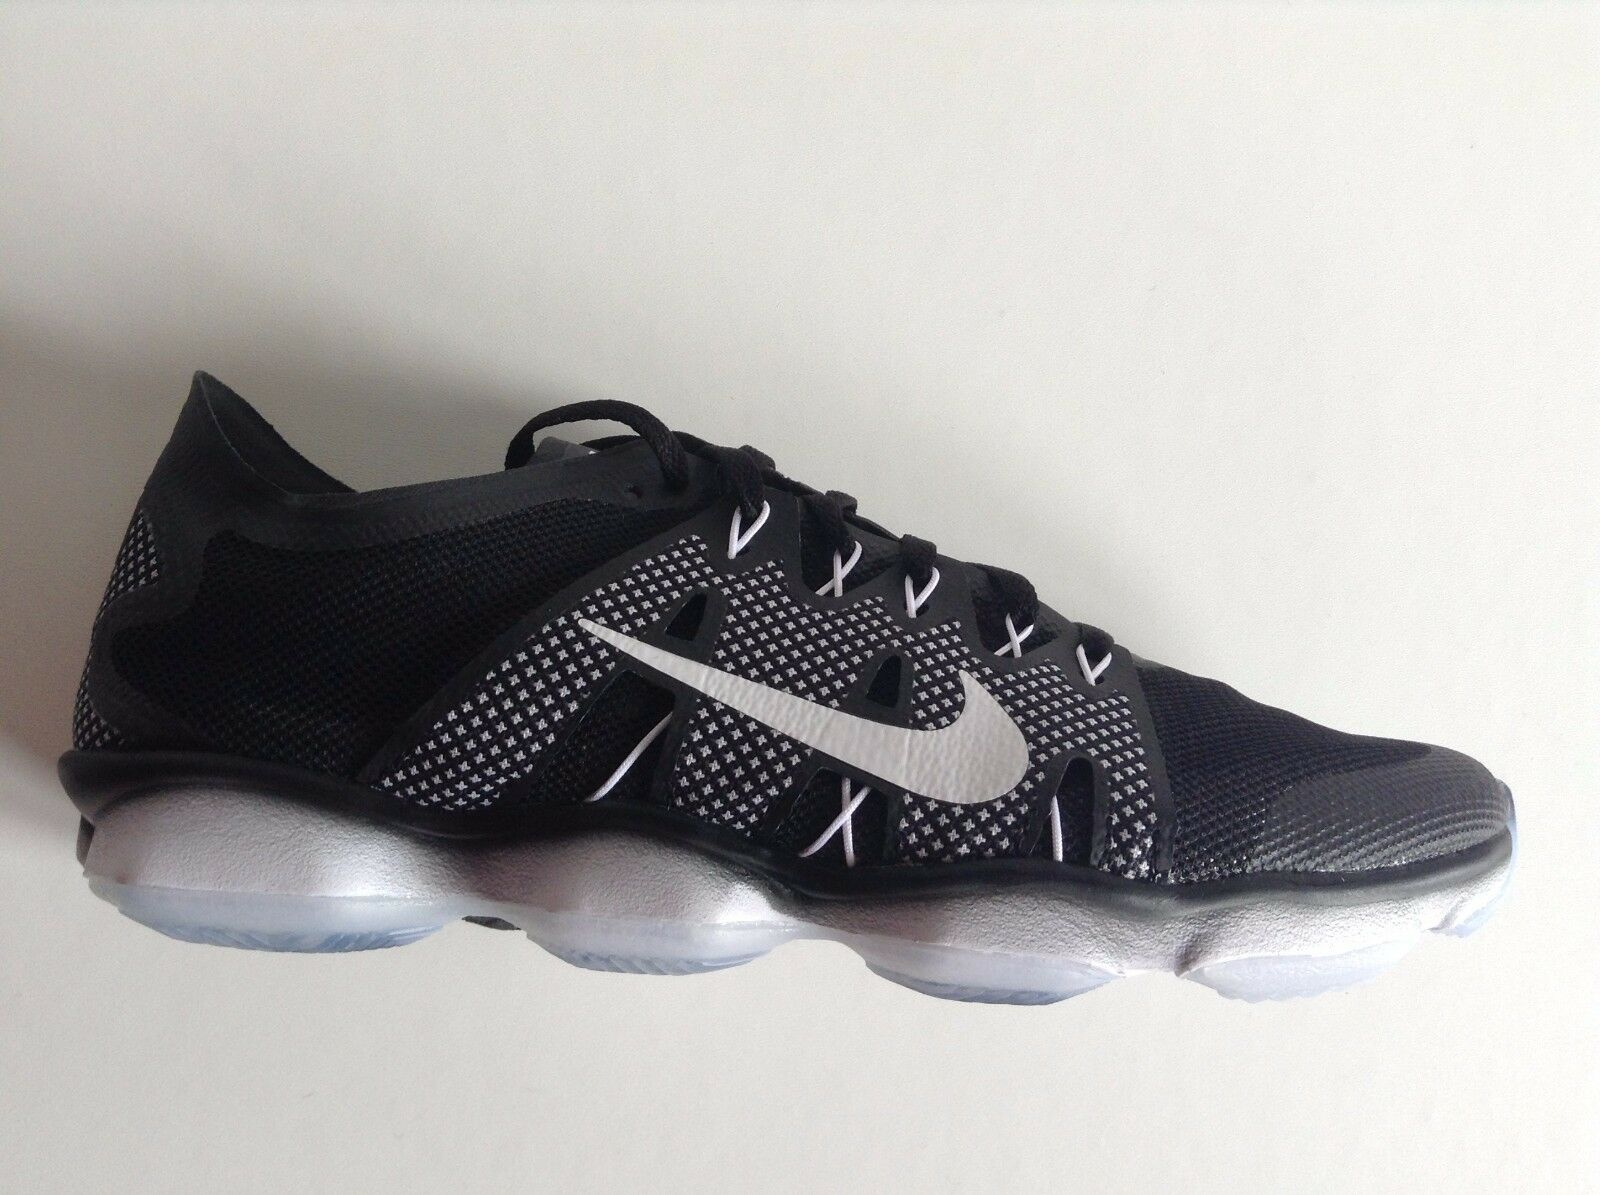 Wo Hommes Nike Air Zoom Running Fit Agility 2 Trainers Running Zoom Chaussures Noir 5-5.5 - NEW 87730b